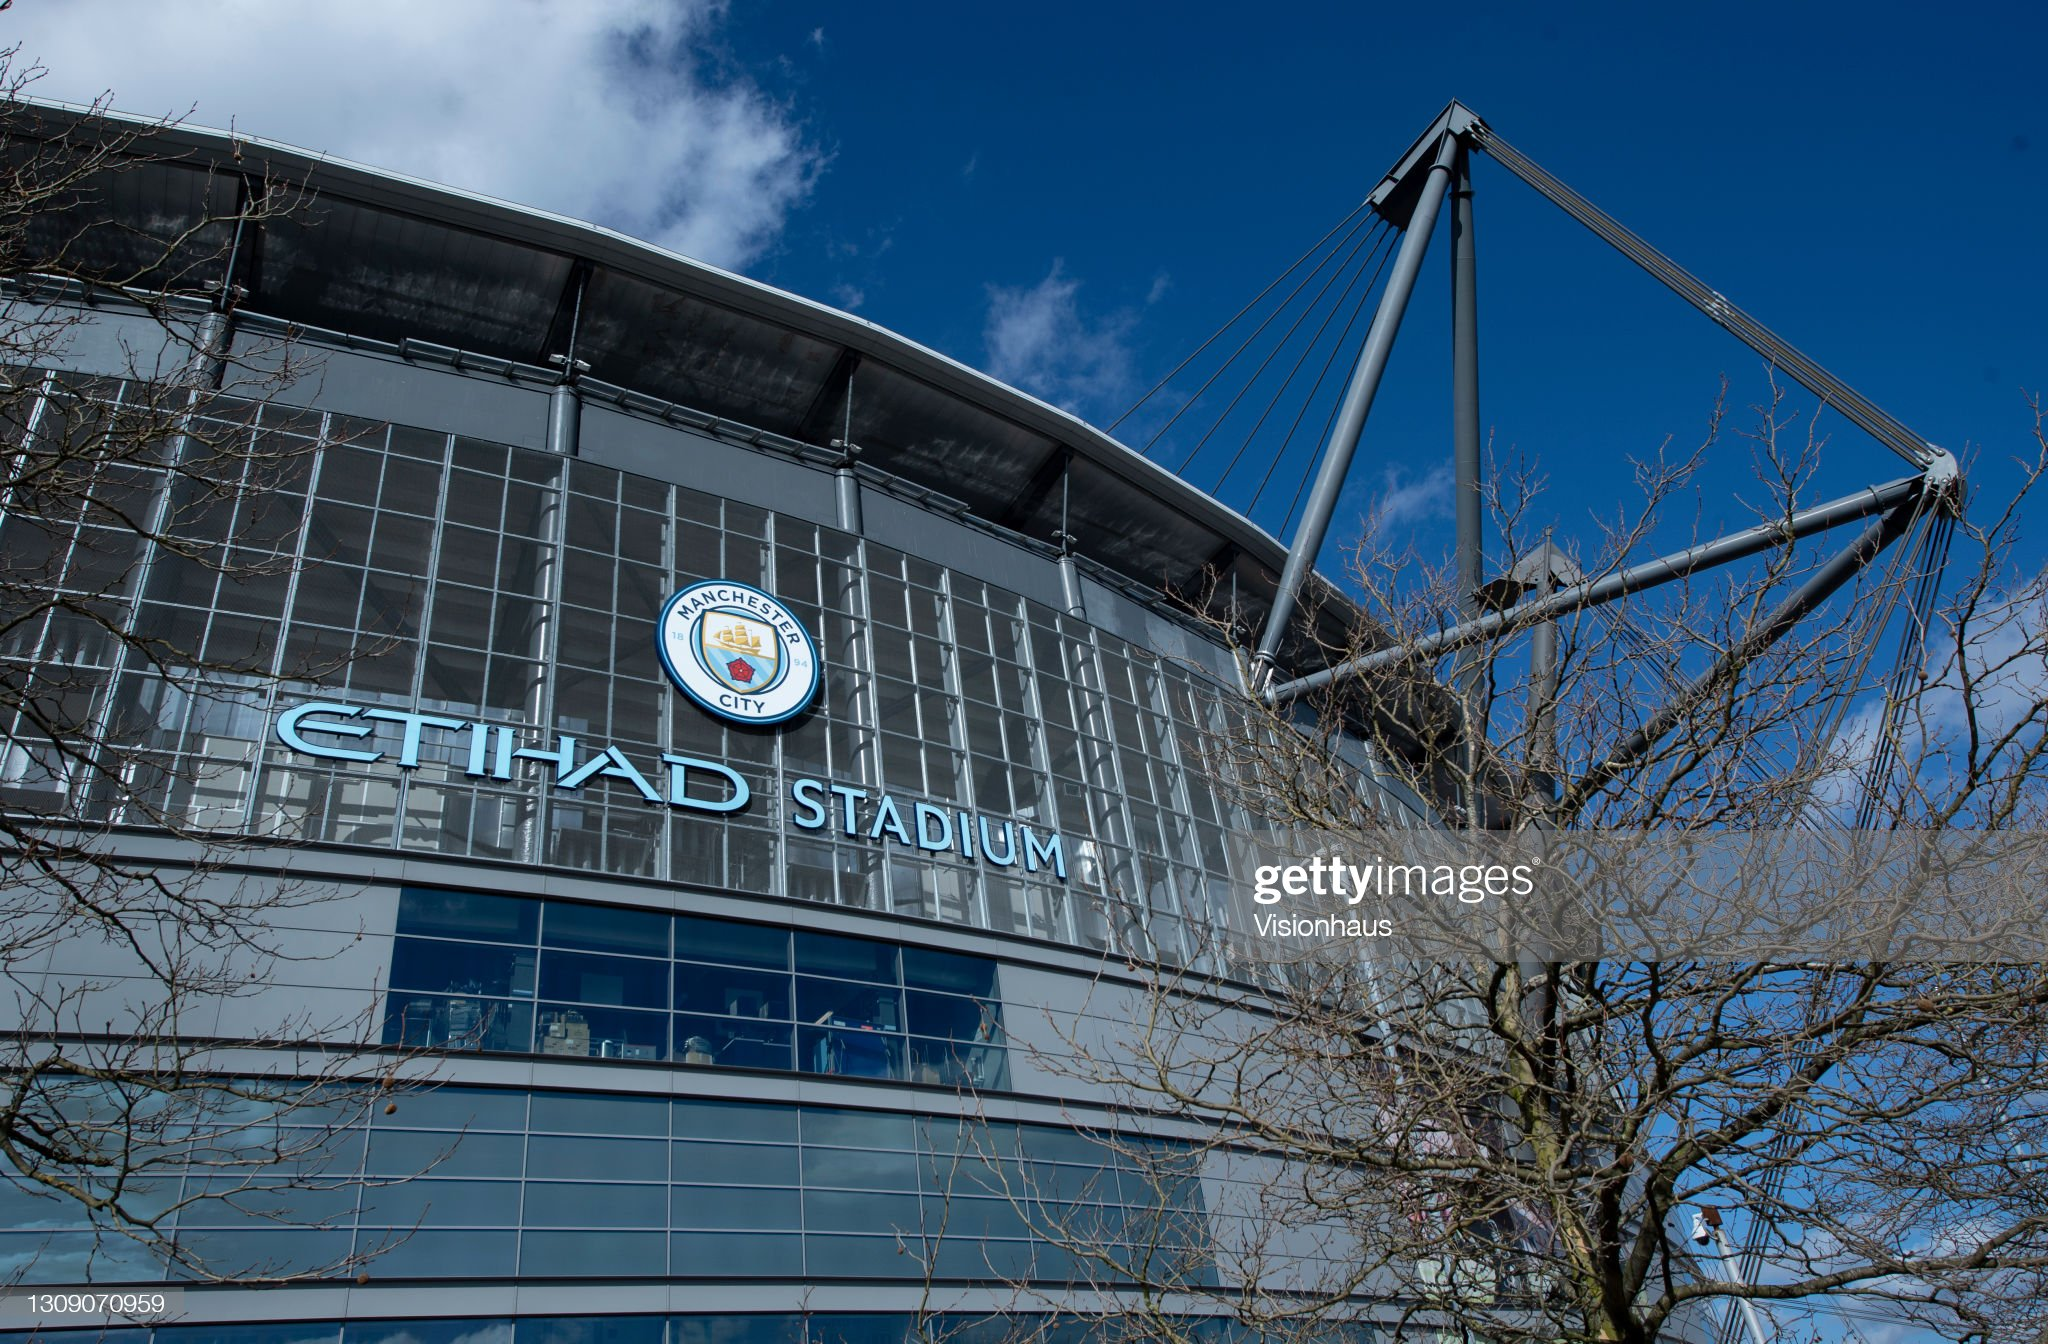 Manchester City vs Dortmund Preview, prediction and odds